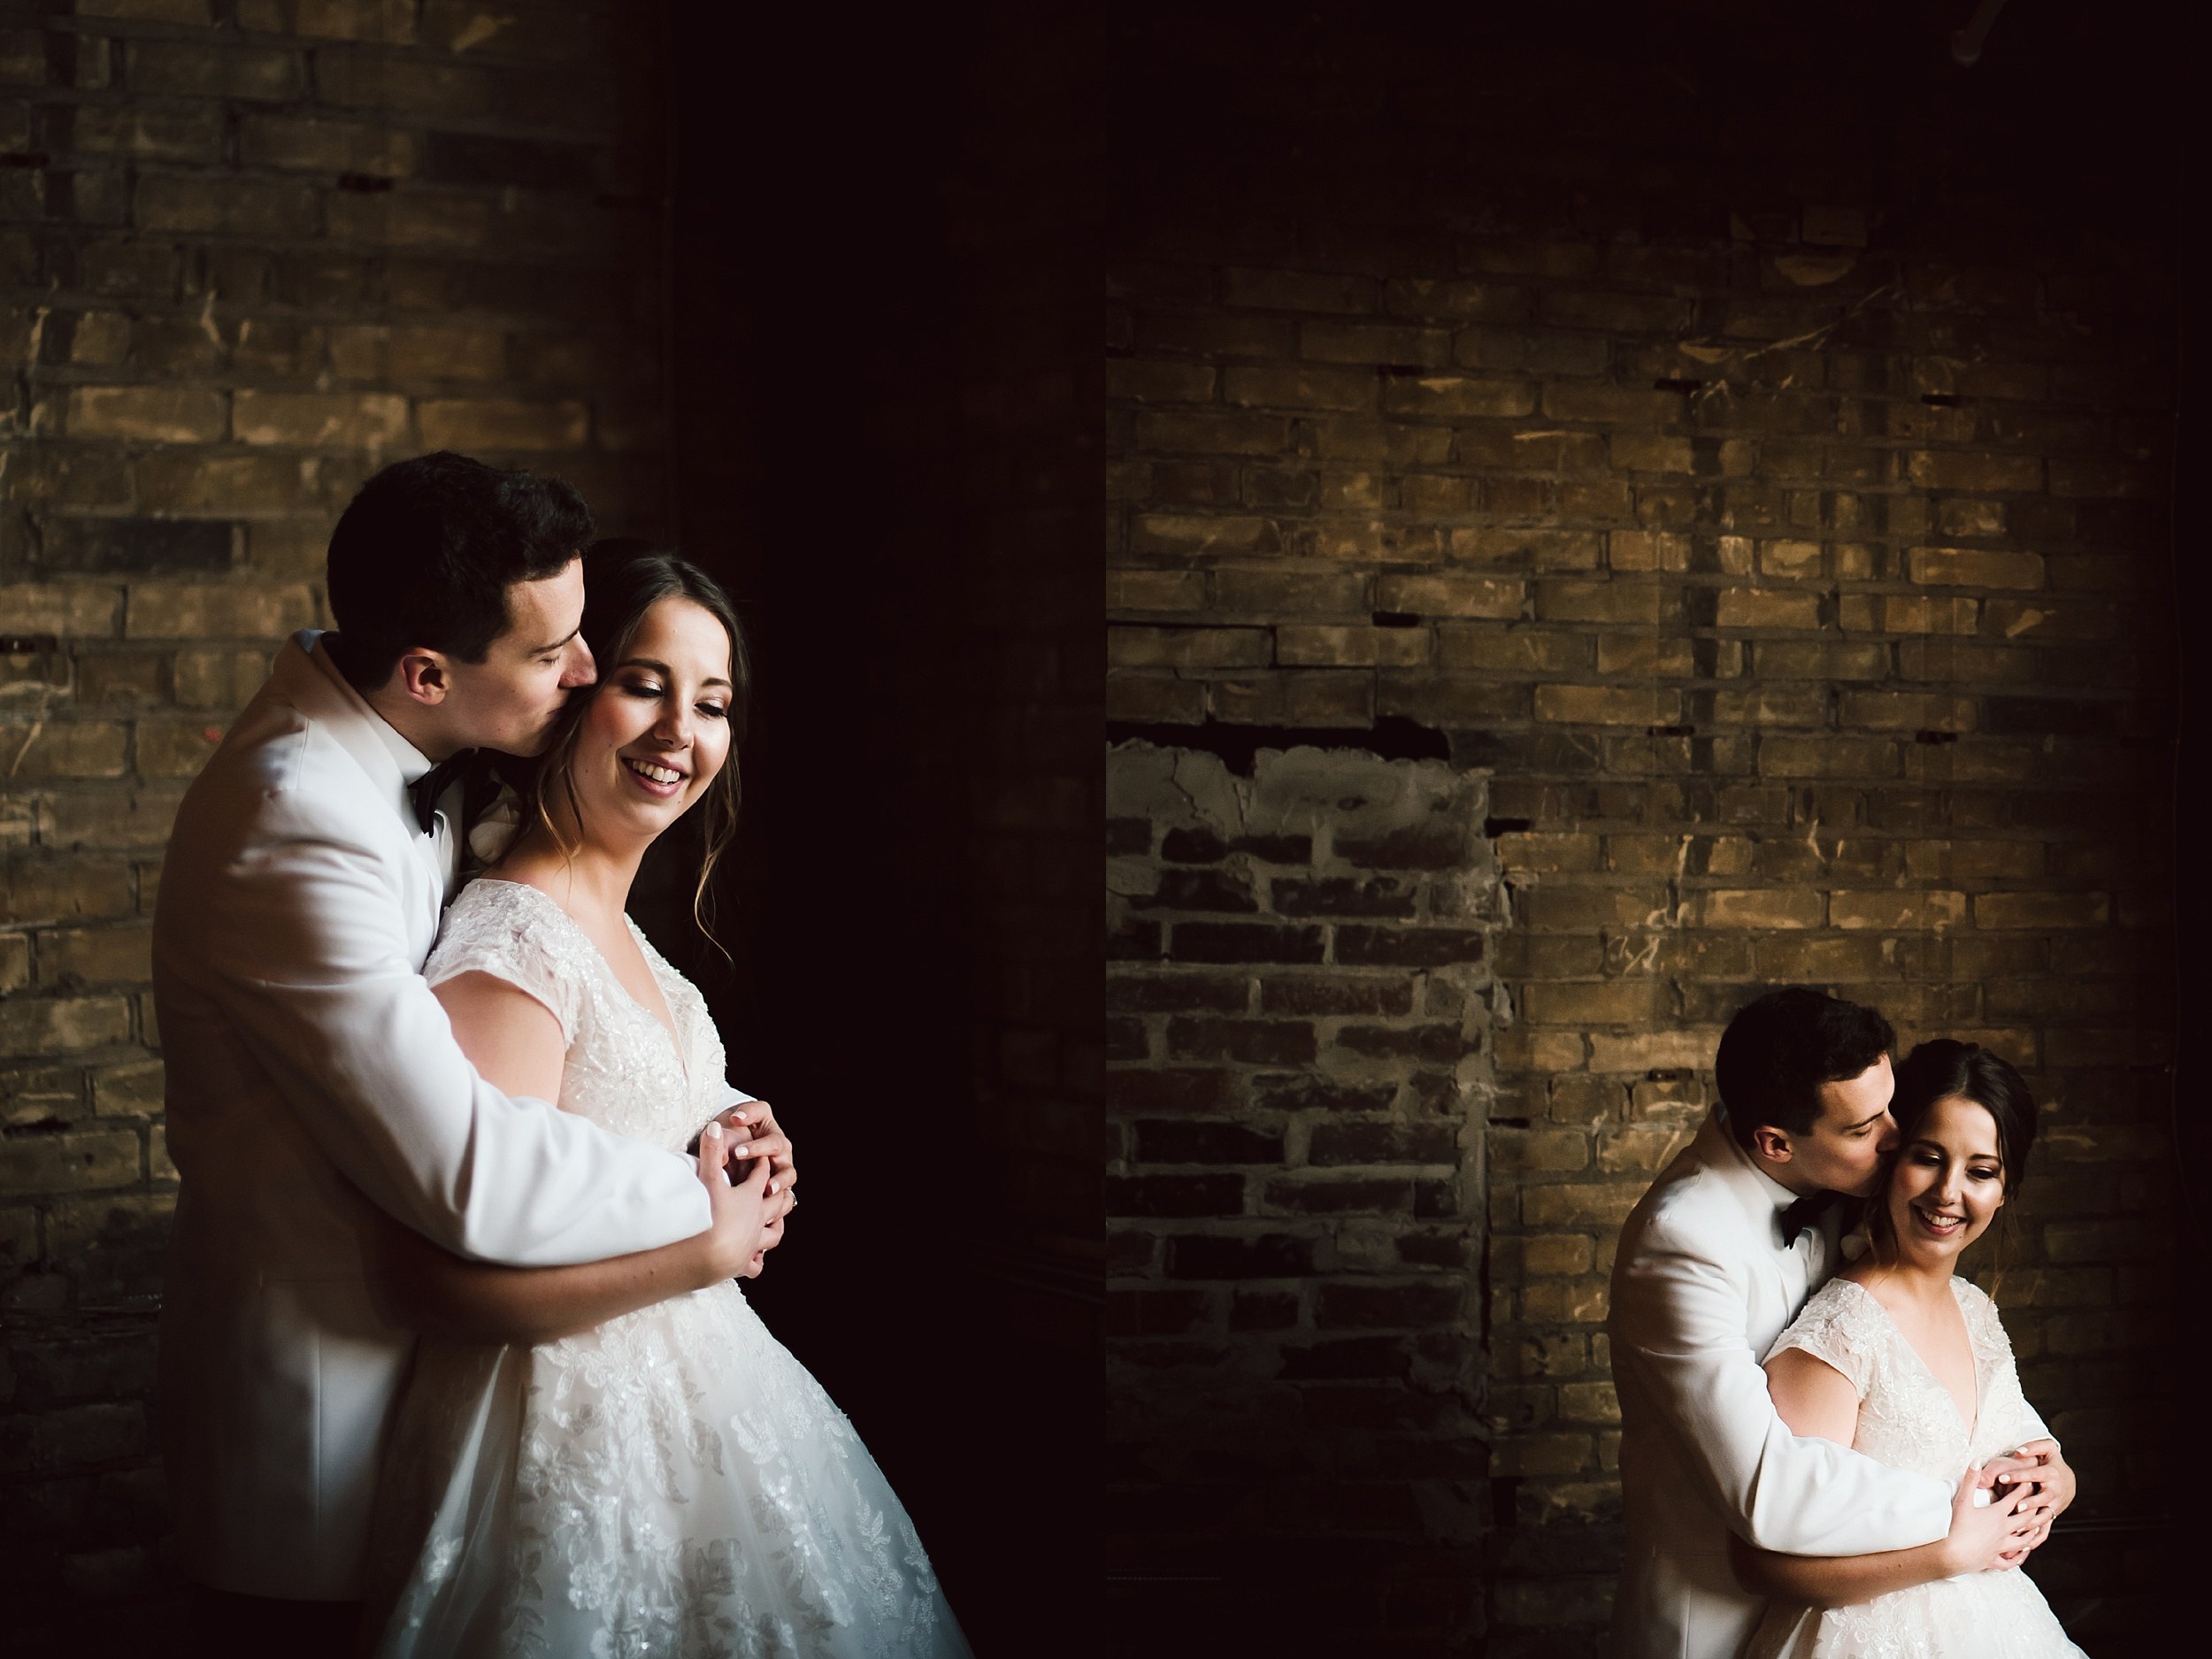 Jam_Factory_Wedding_Toronto_Winter_Wedding_Photographer_0044.jpg